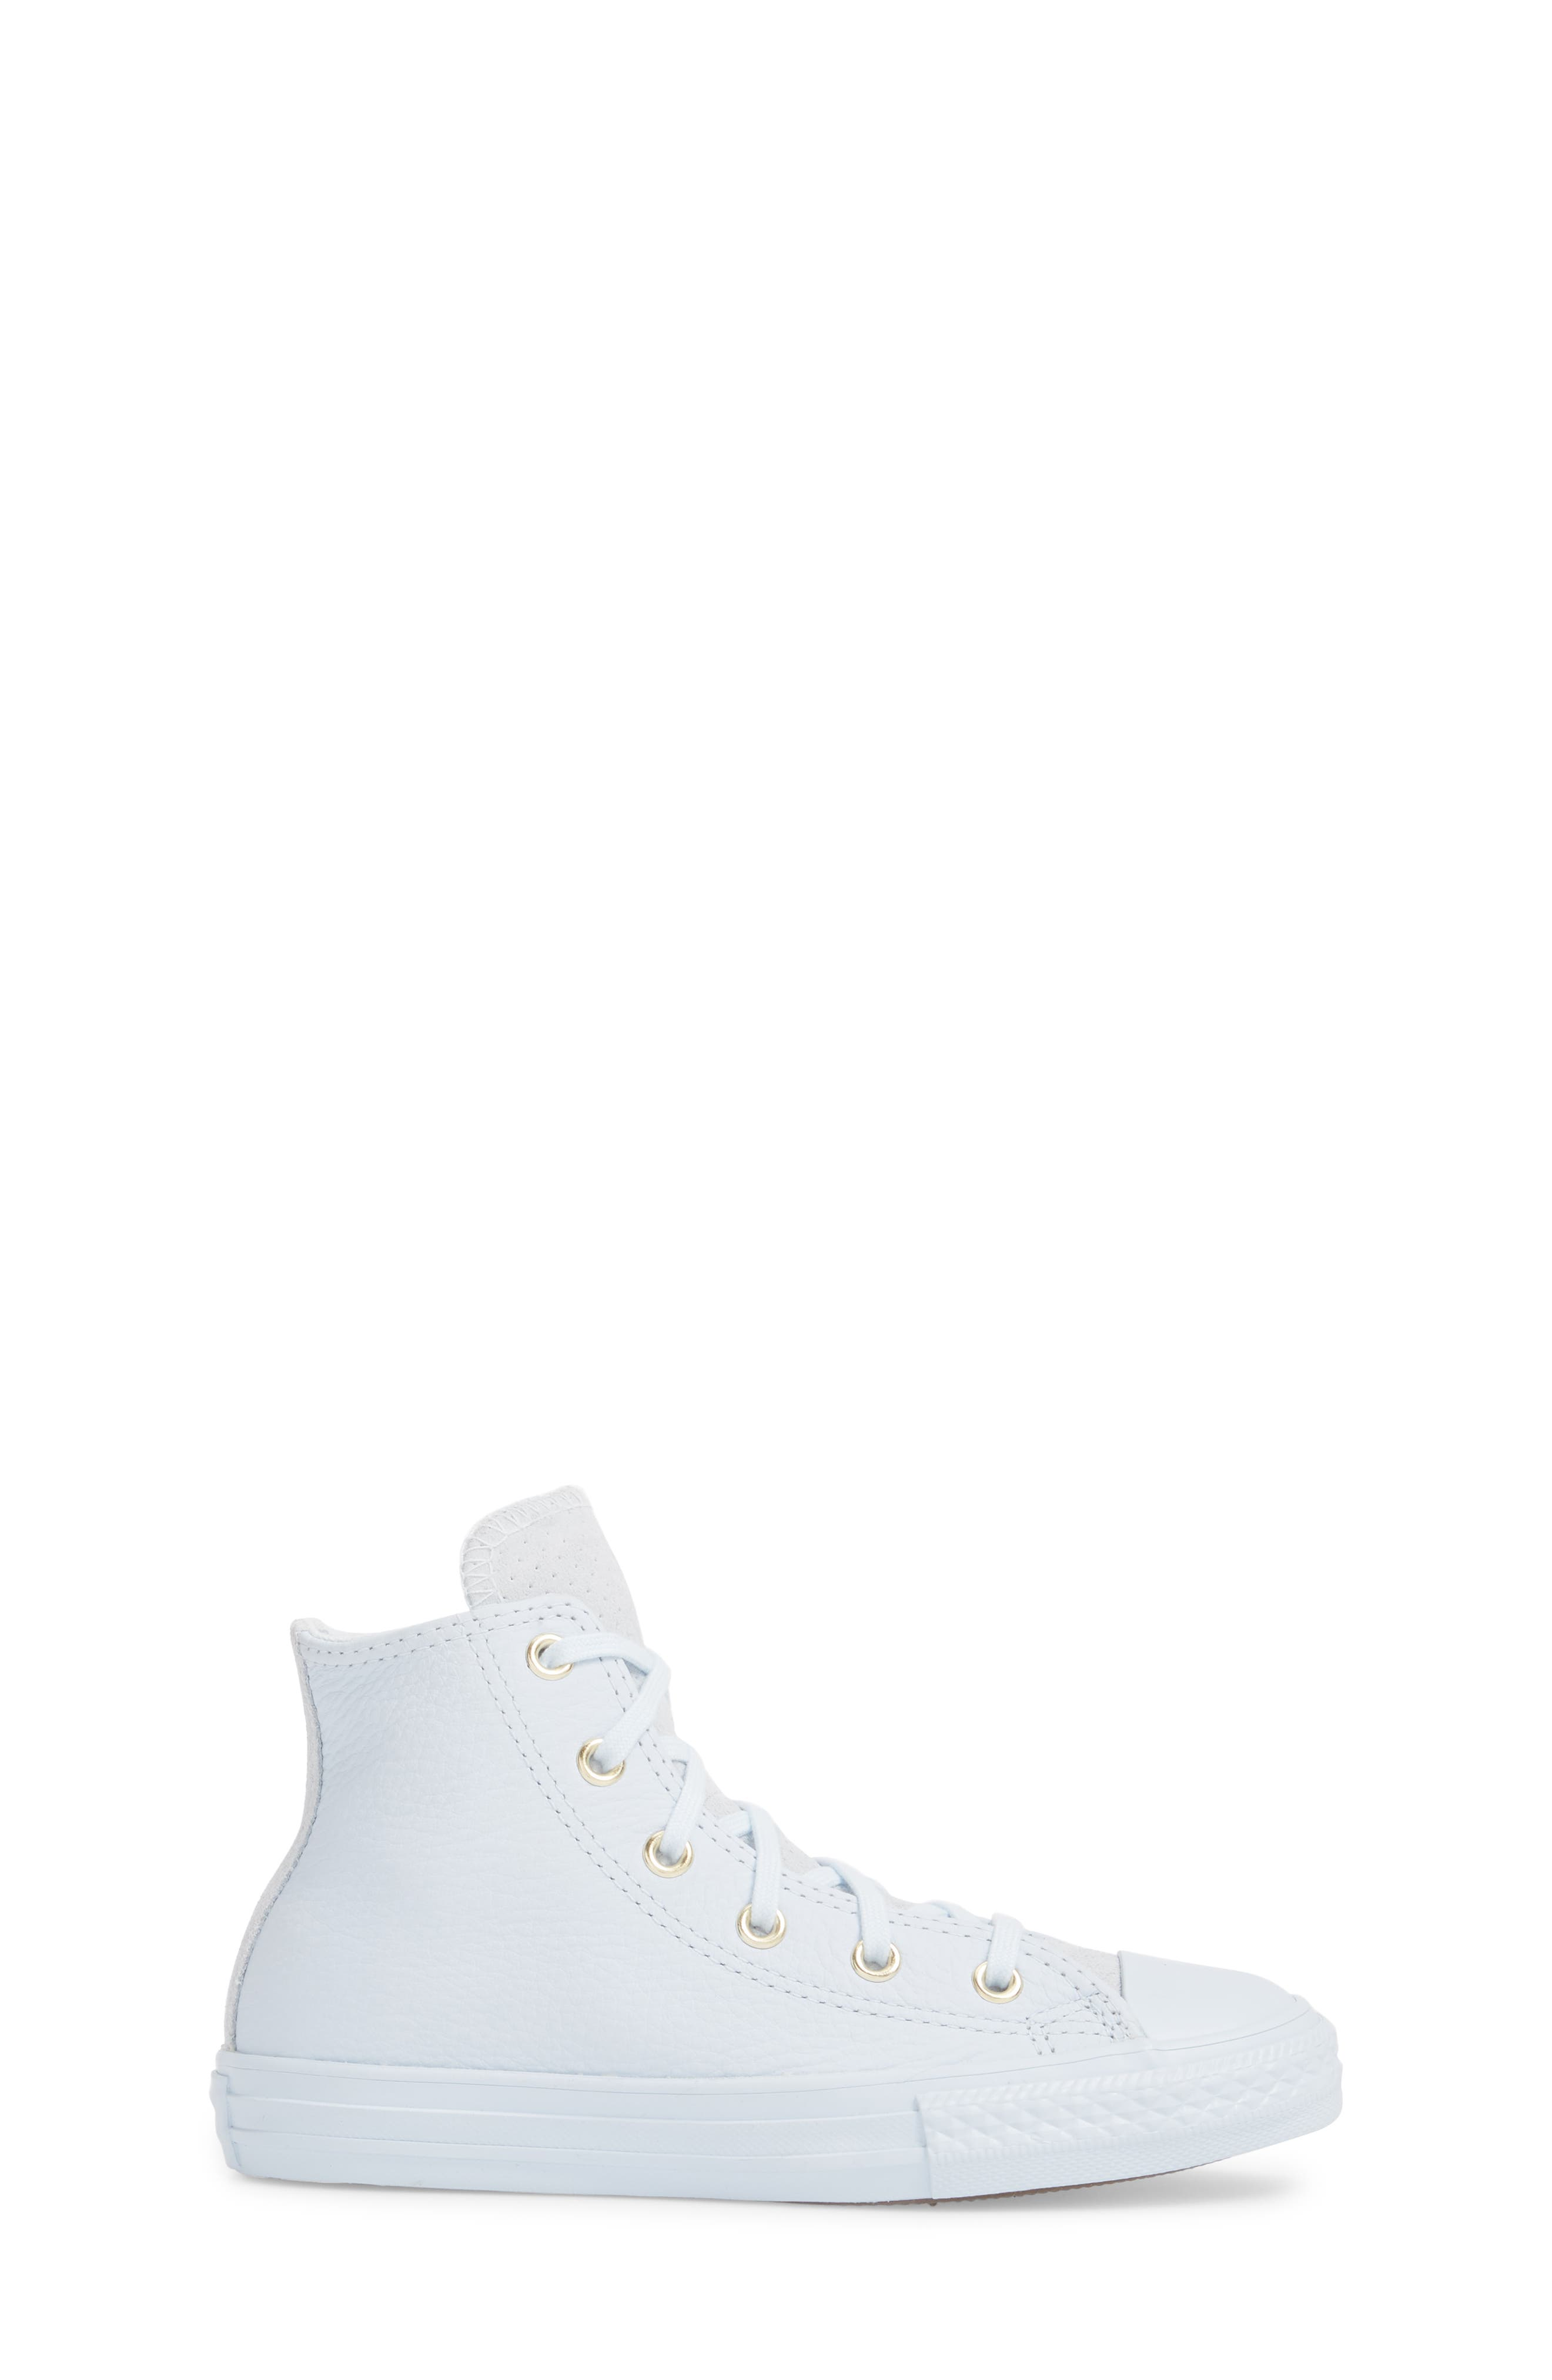 Chuck Taylor<sup>®</sup> All Star<sup>®</sup> Mono High Top Sneaker,                             Alternate thumbnail 3, color,                             Blue Tint